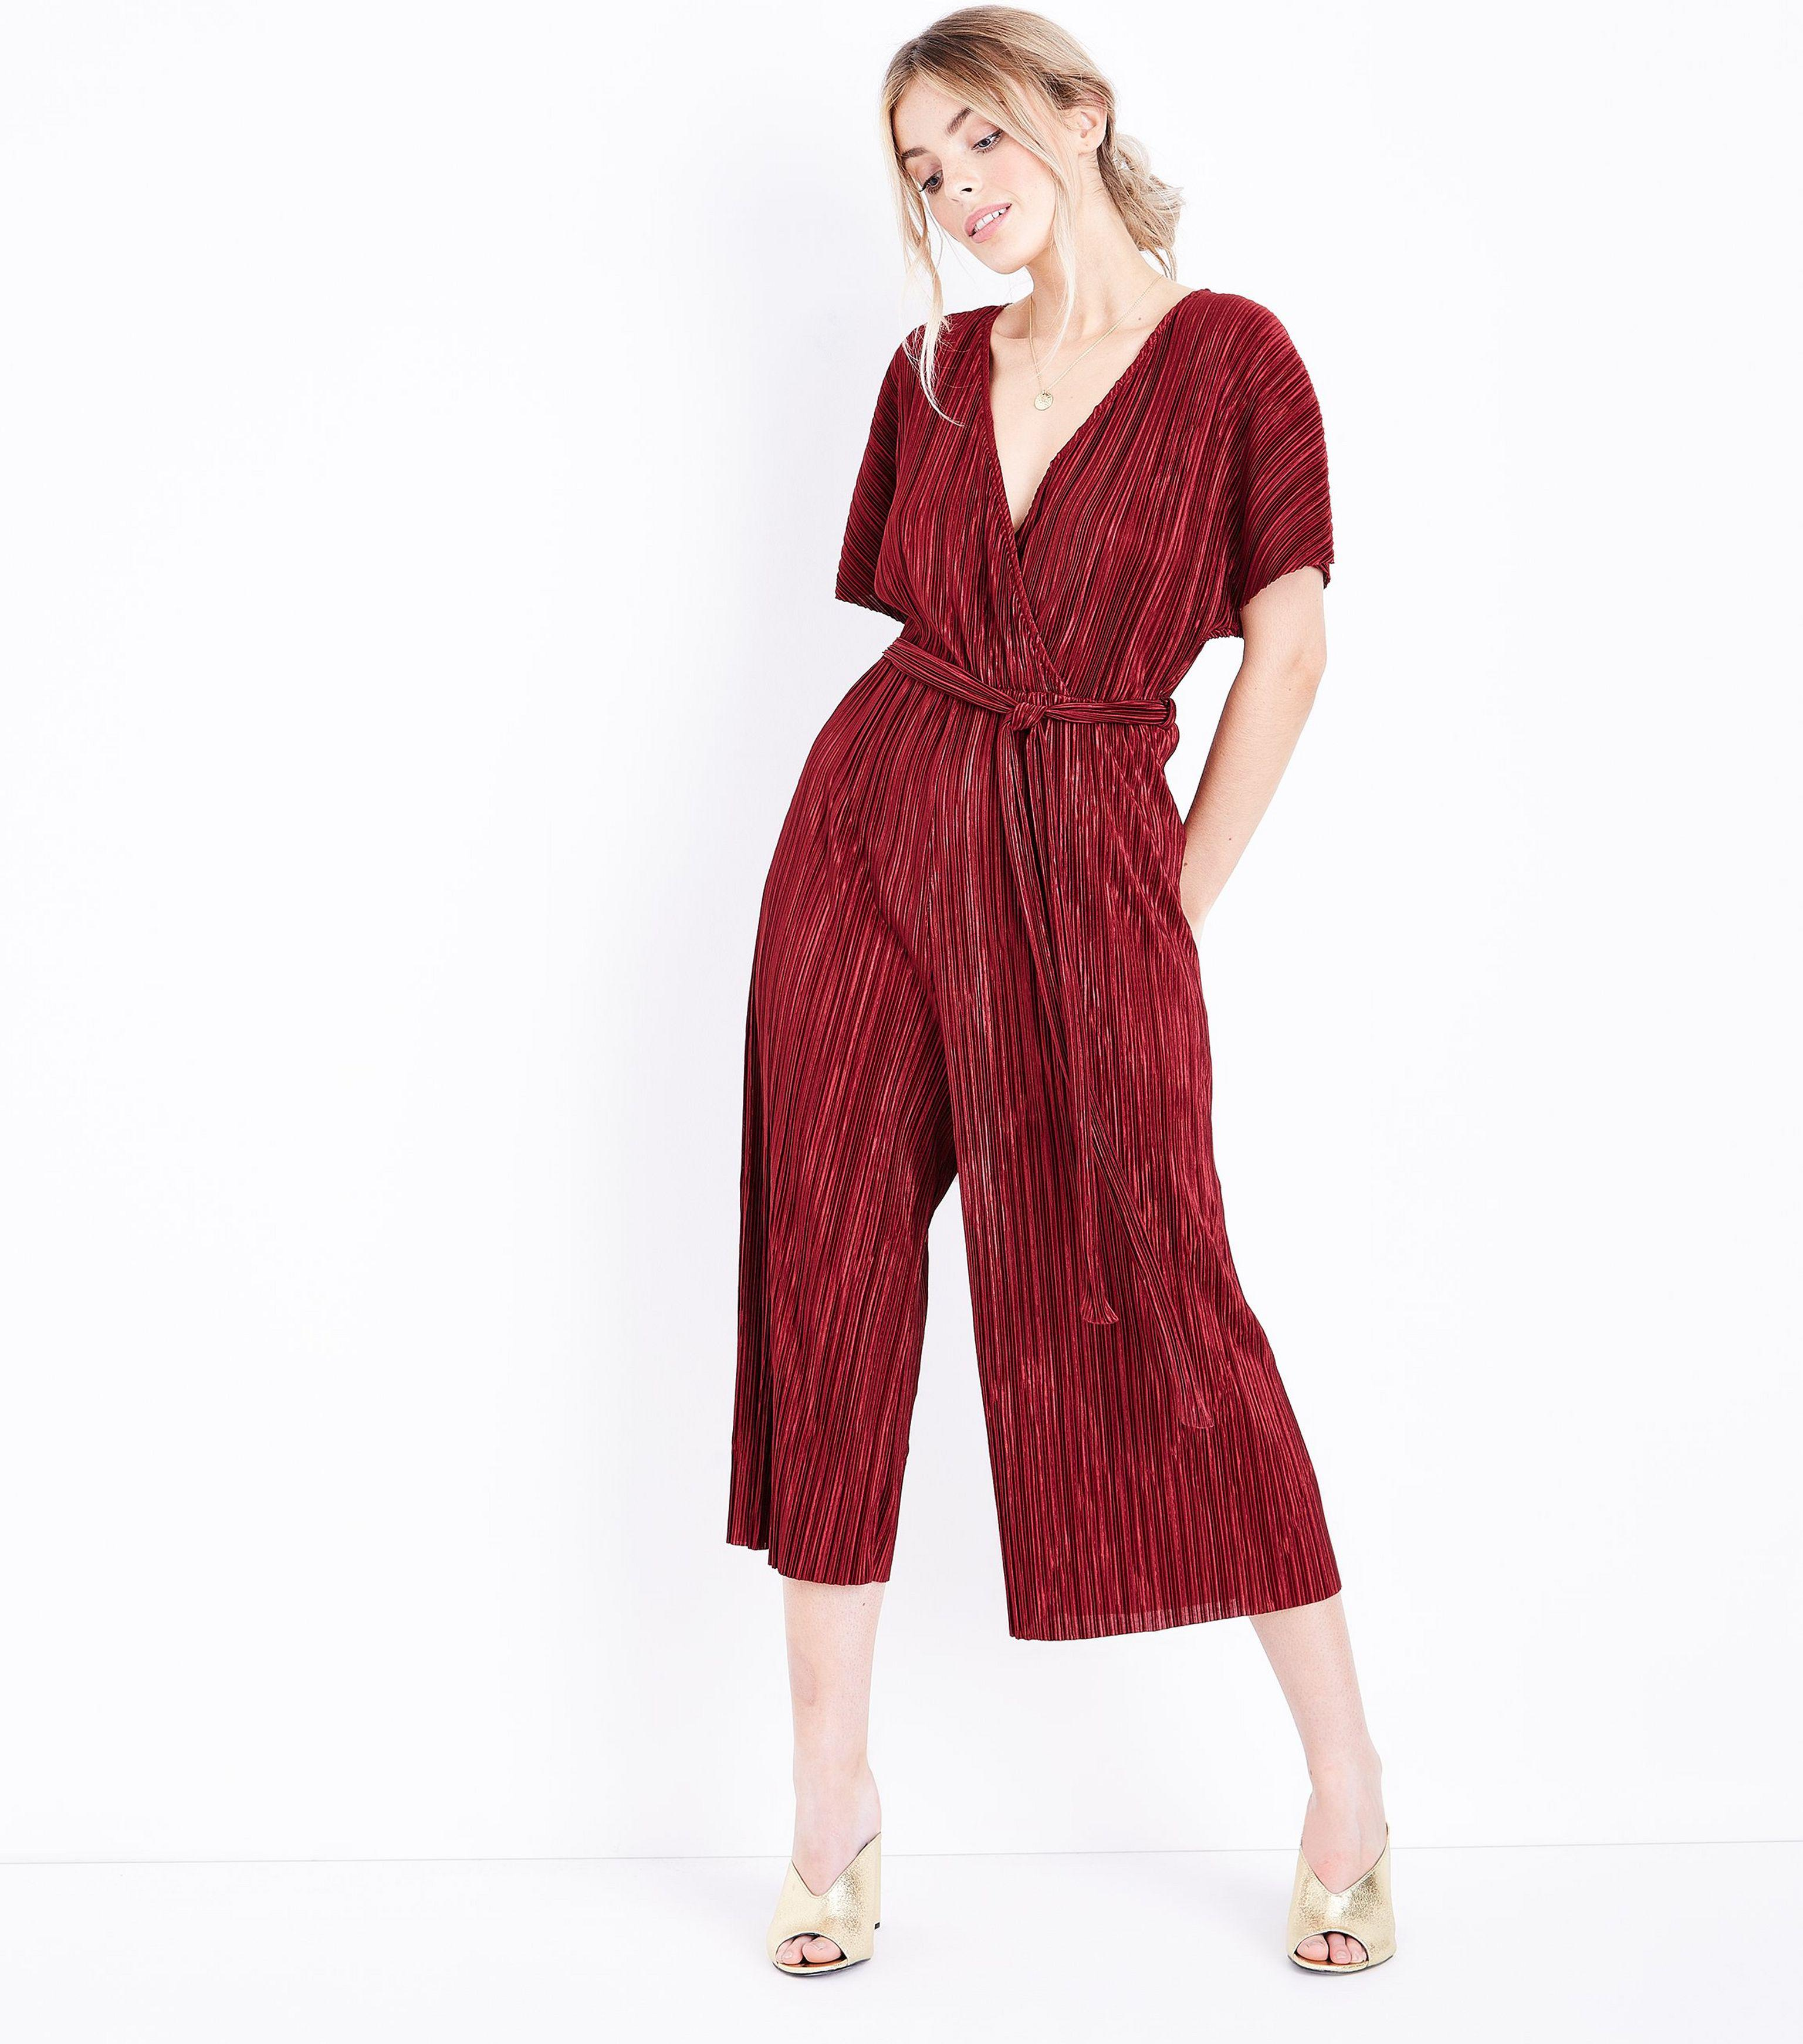 36d1af6b84 New Look Petite Burgundy Plisse Wrap Front Culotte Jumpsuit in Red ...